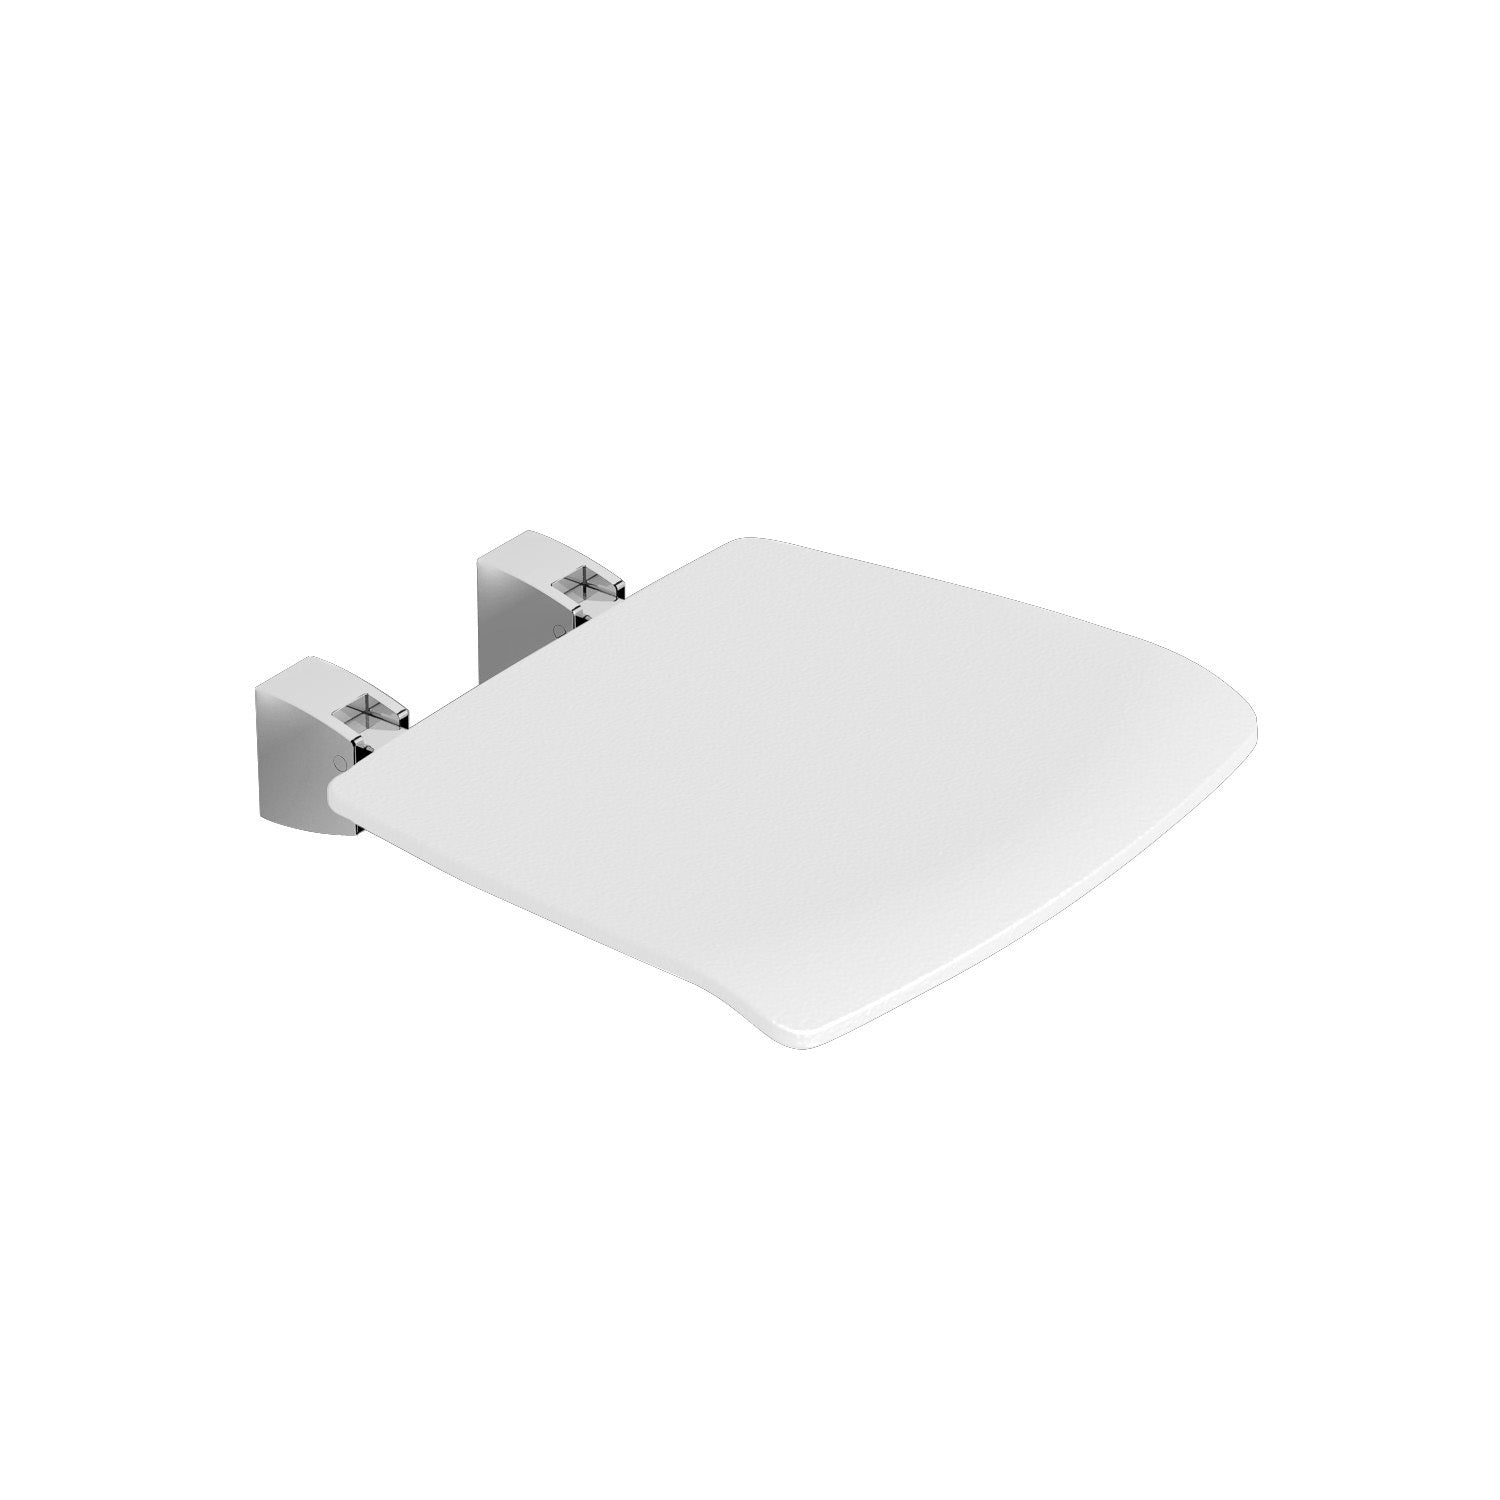 Fixed Shower Seat with a white seat on a white background